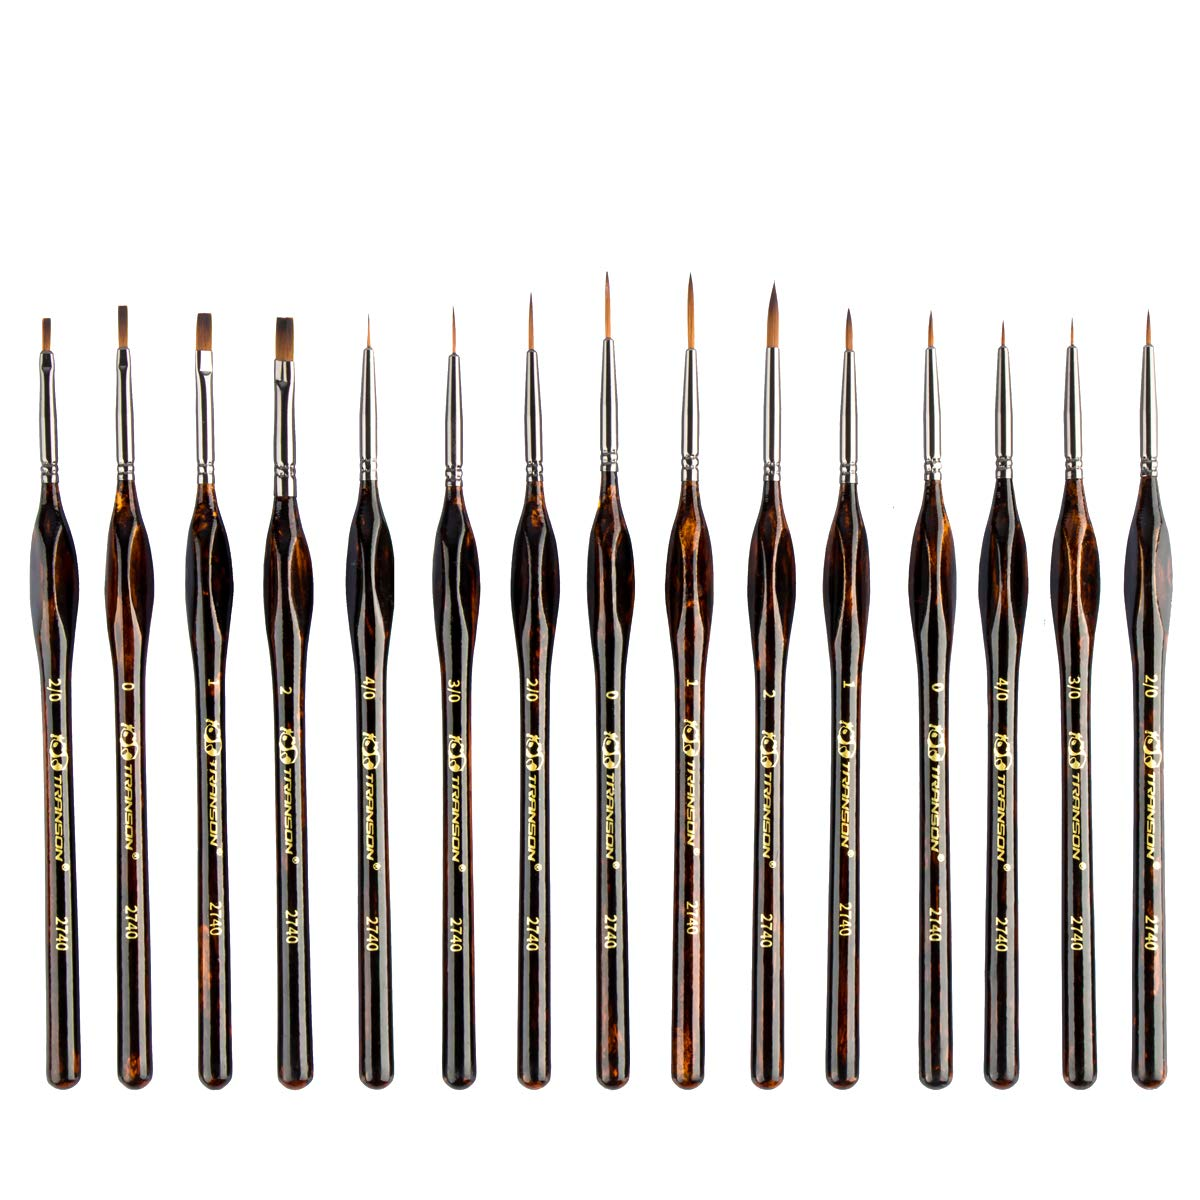 Transon Artist Detail Paint Brushes with Case 15pces for Model Miniature Painting